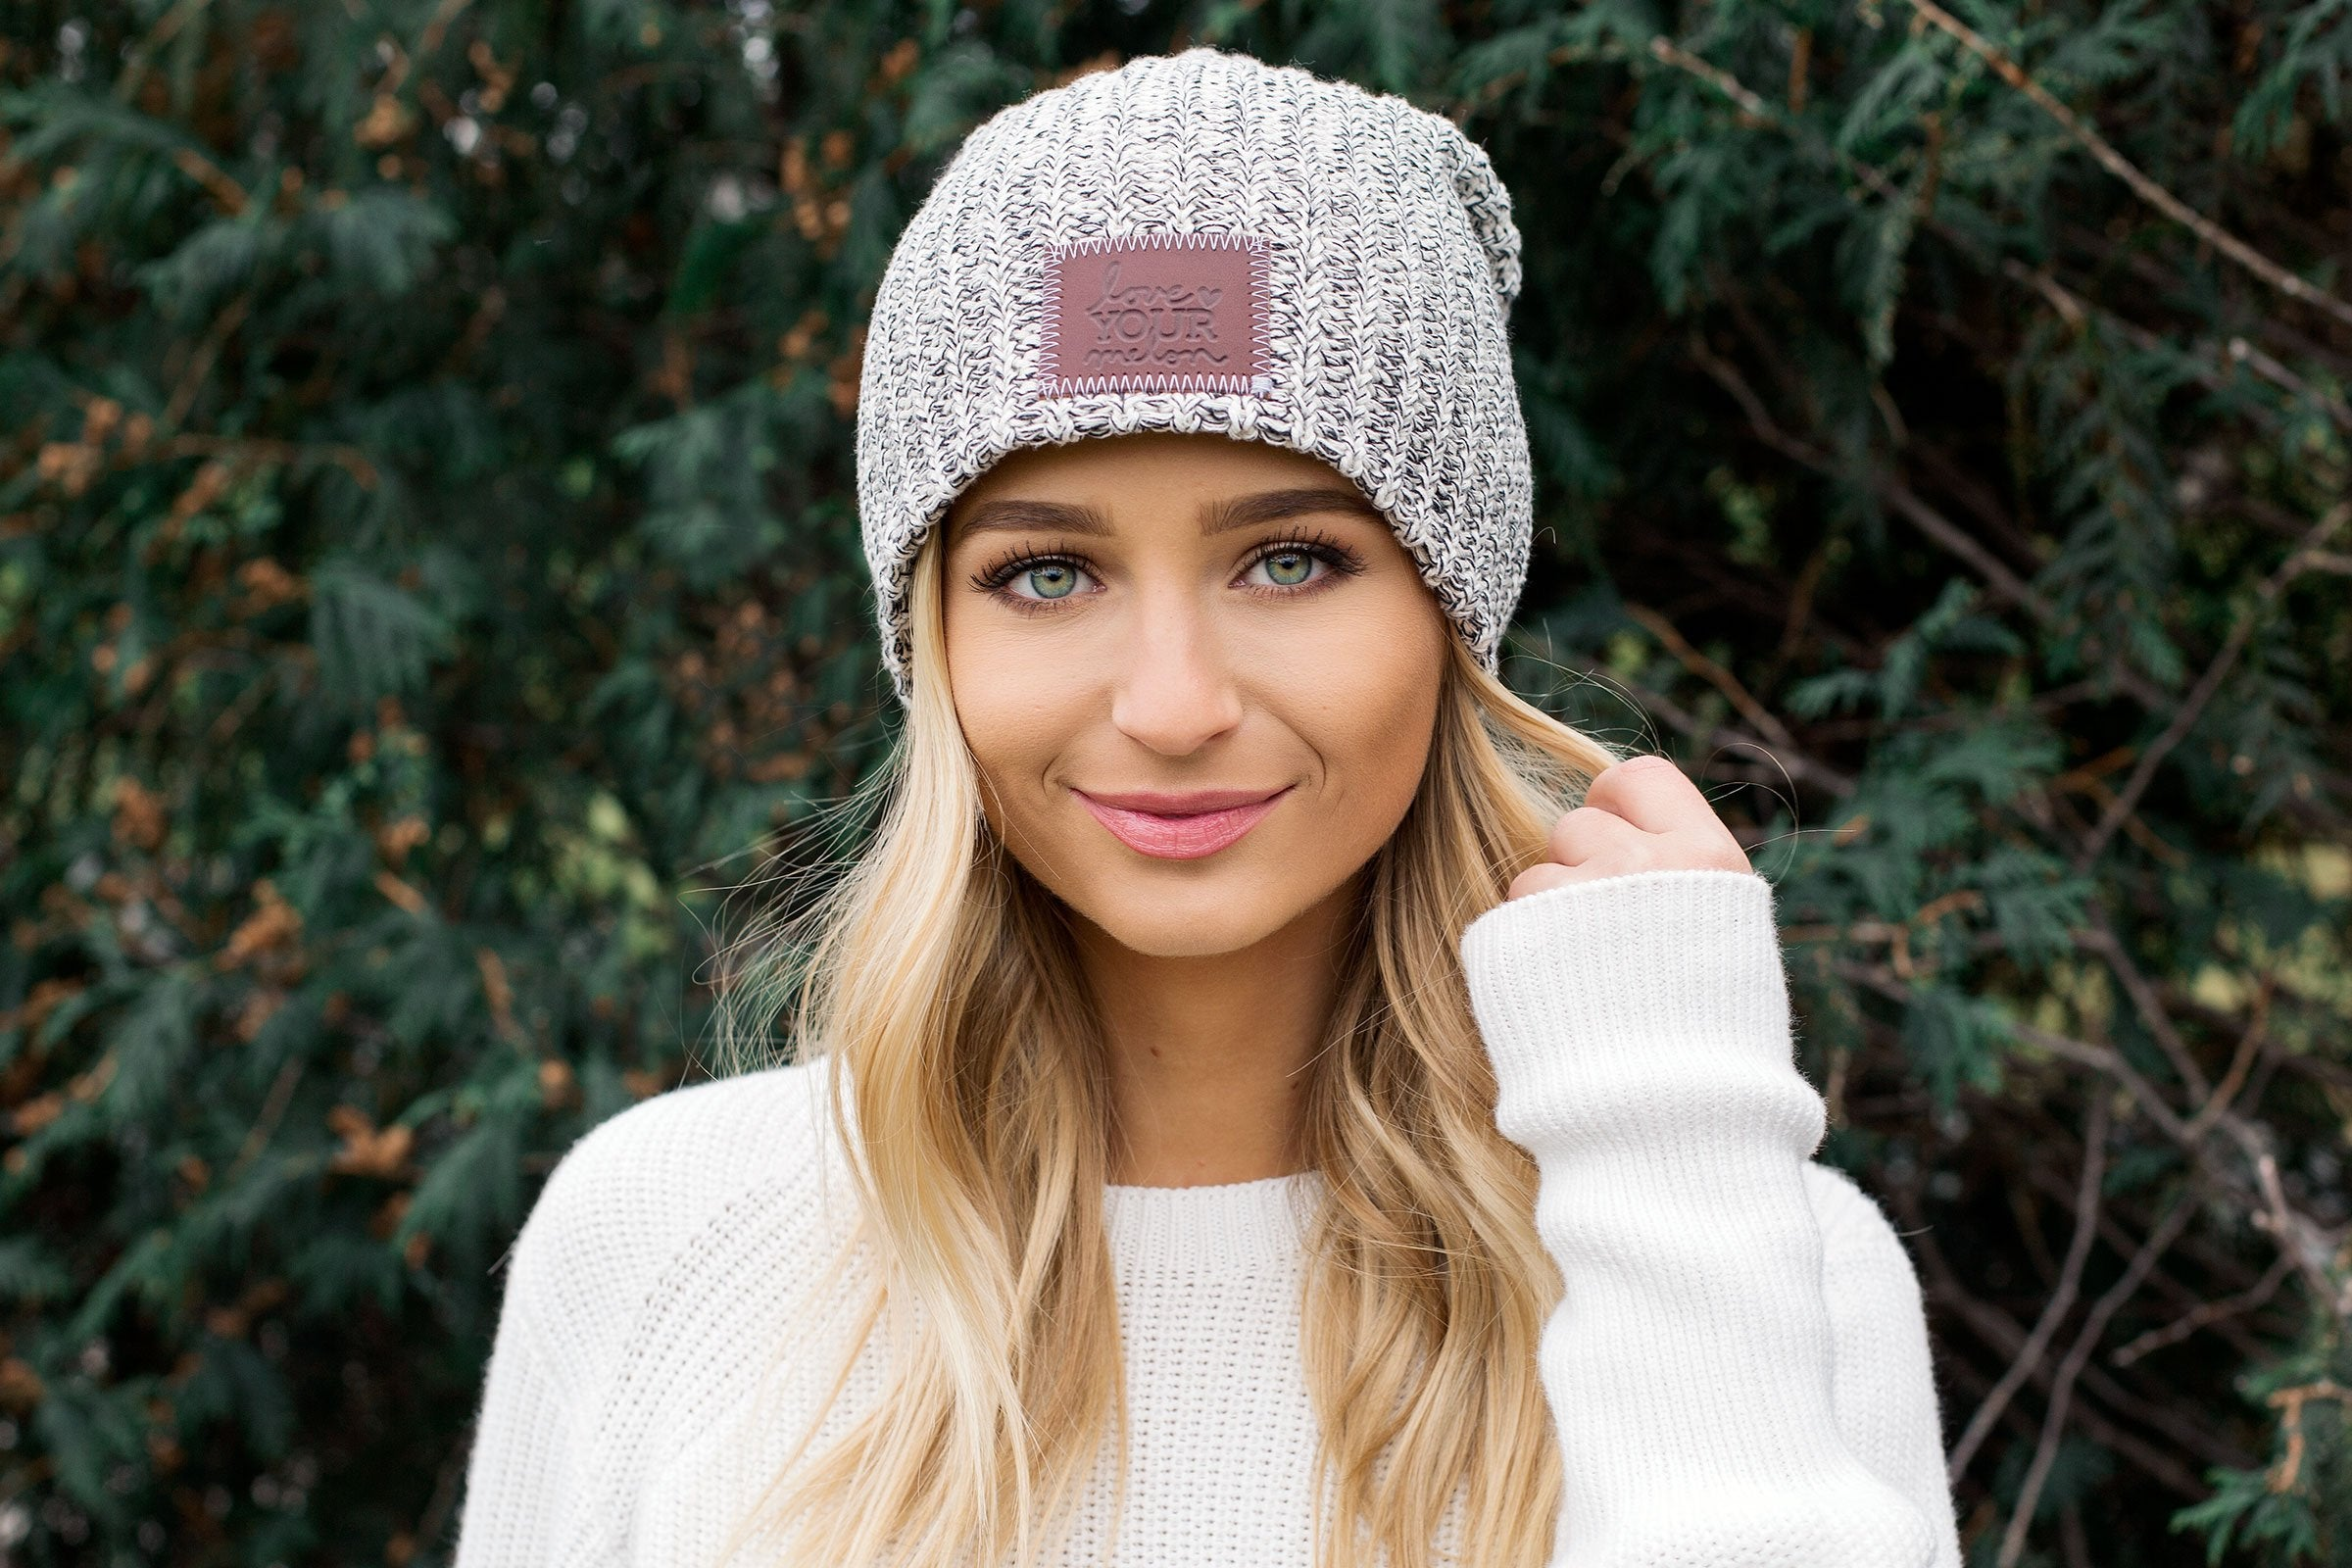 Black Speckled Beanie Wholesale